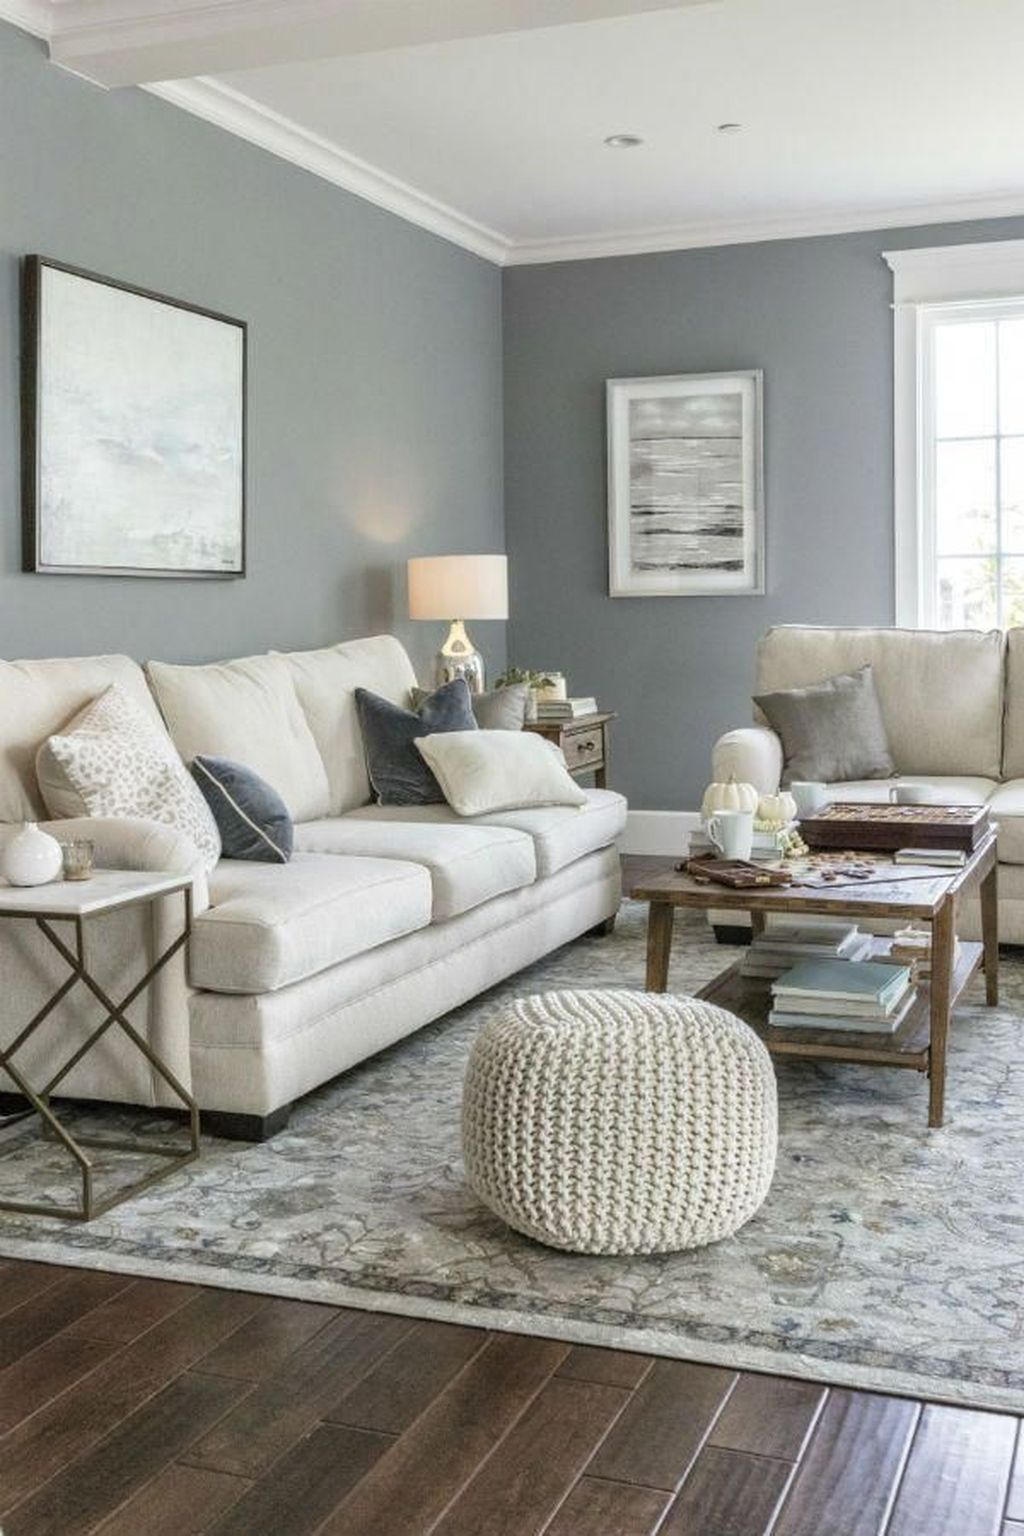 Luxury Living Room Design Ideas With Gray Wall Color 17